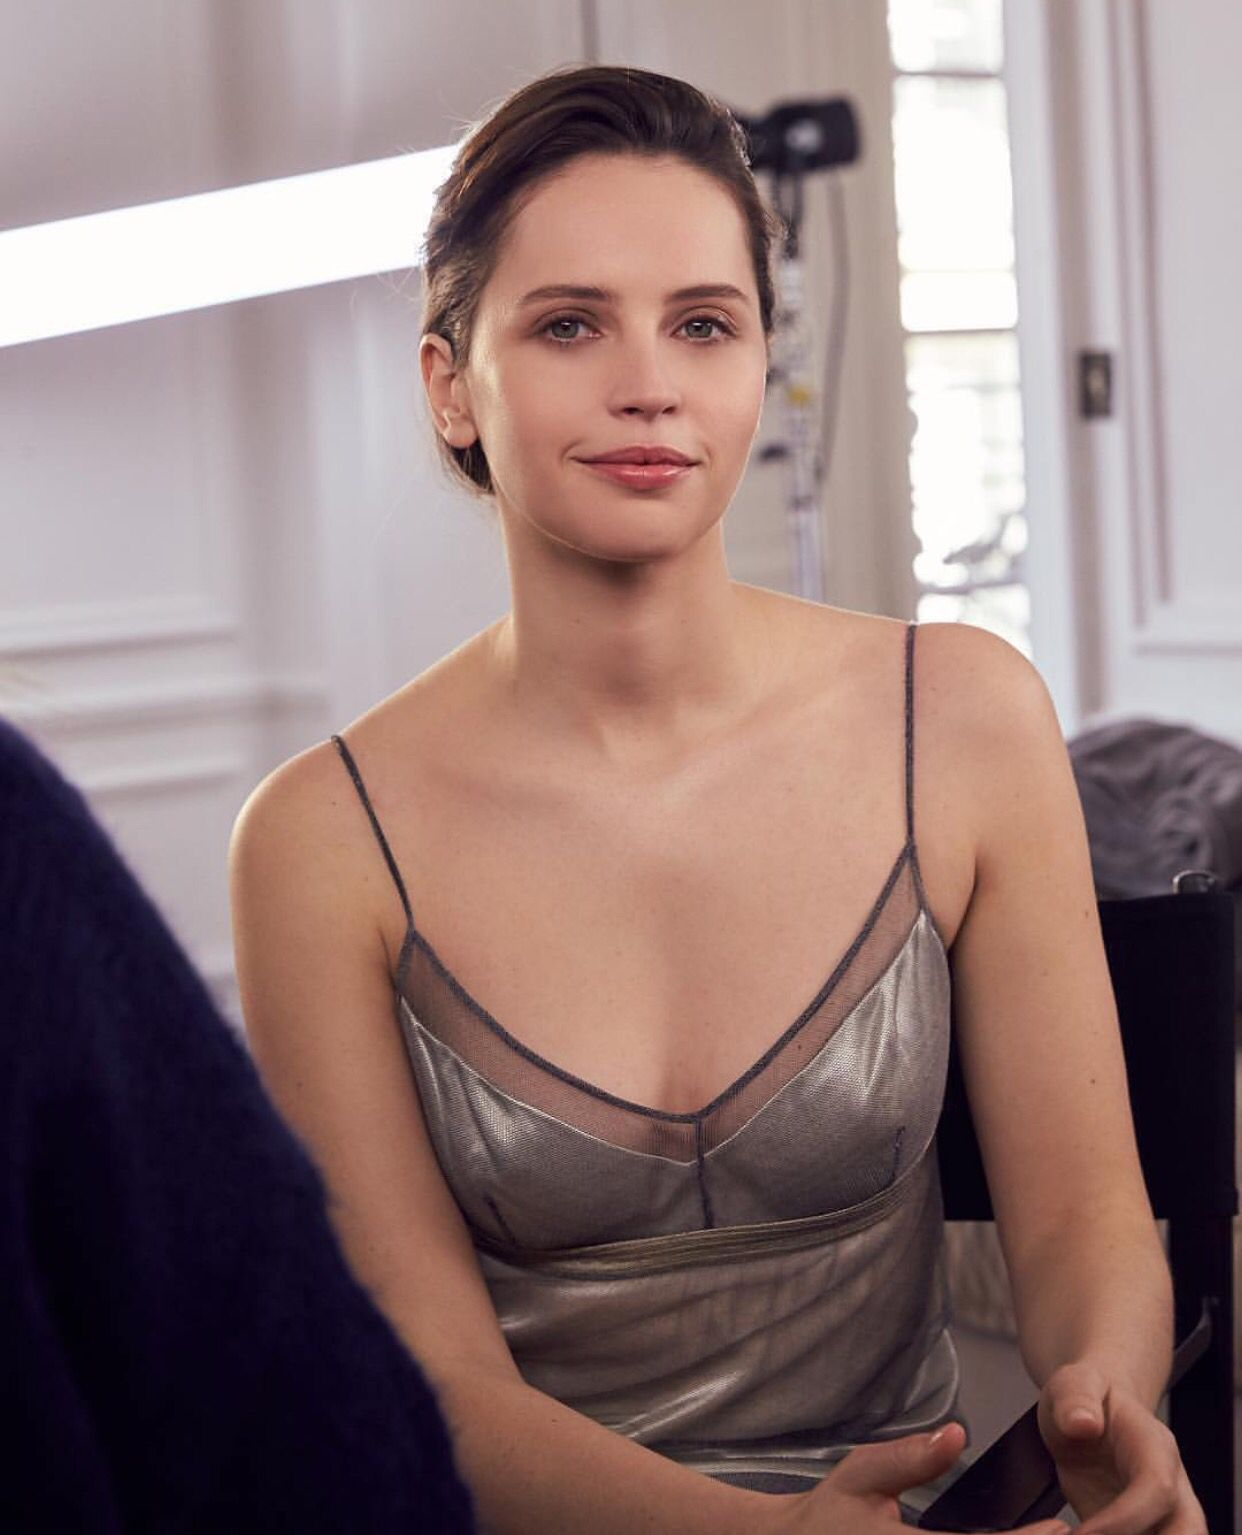 Pin by John Brown on Felicity Jones | Felicity rose hadley jones, Felicity  jones, Felicty jones